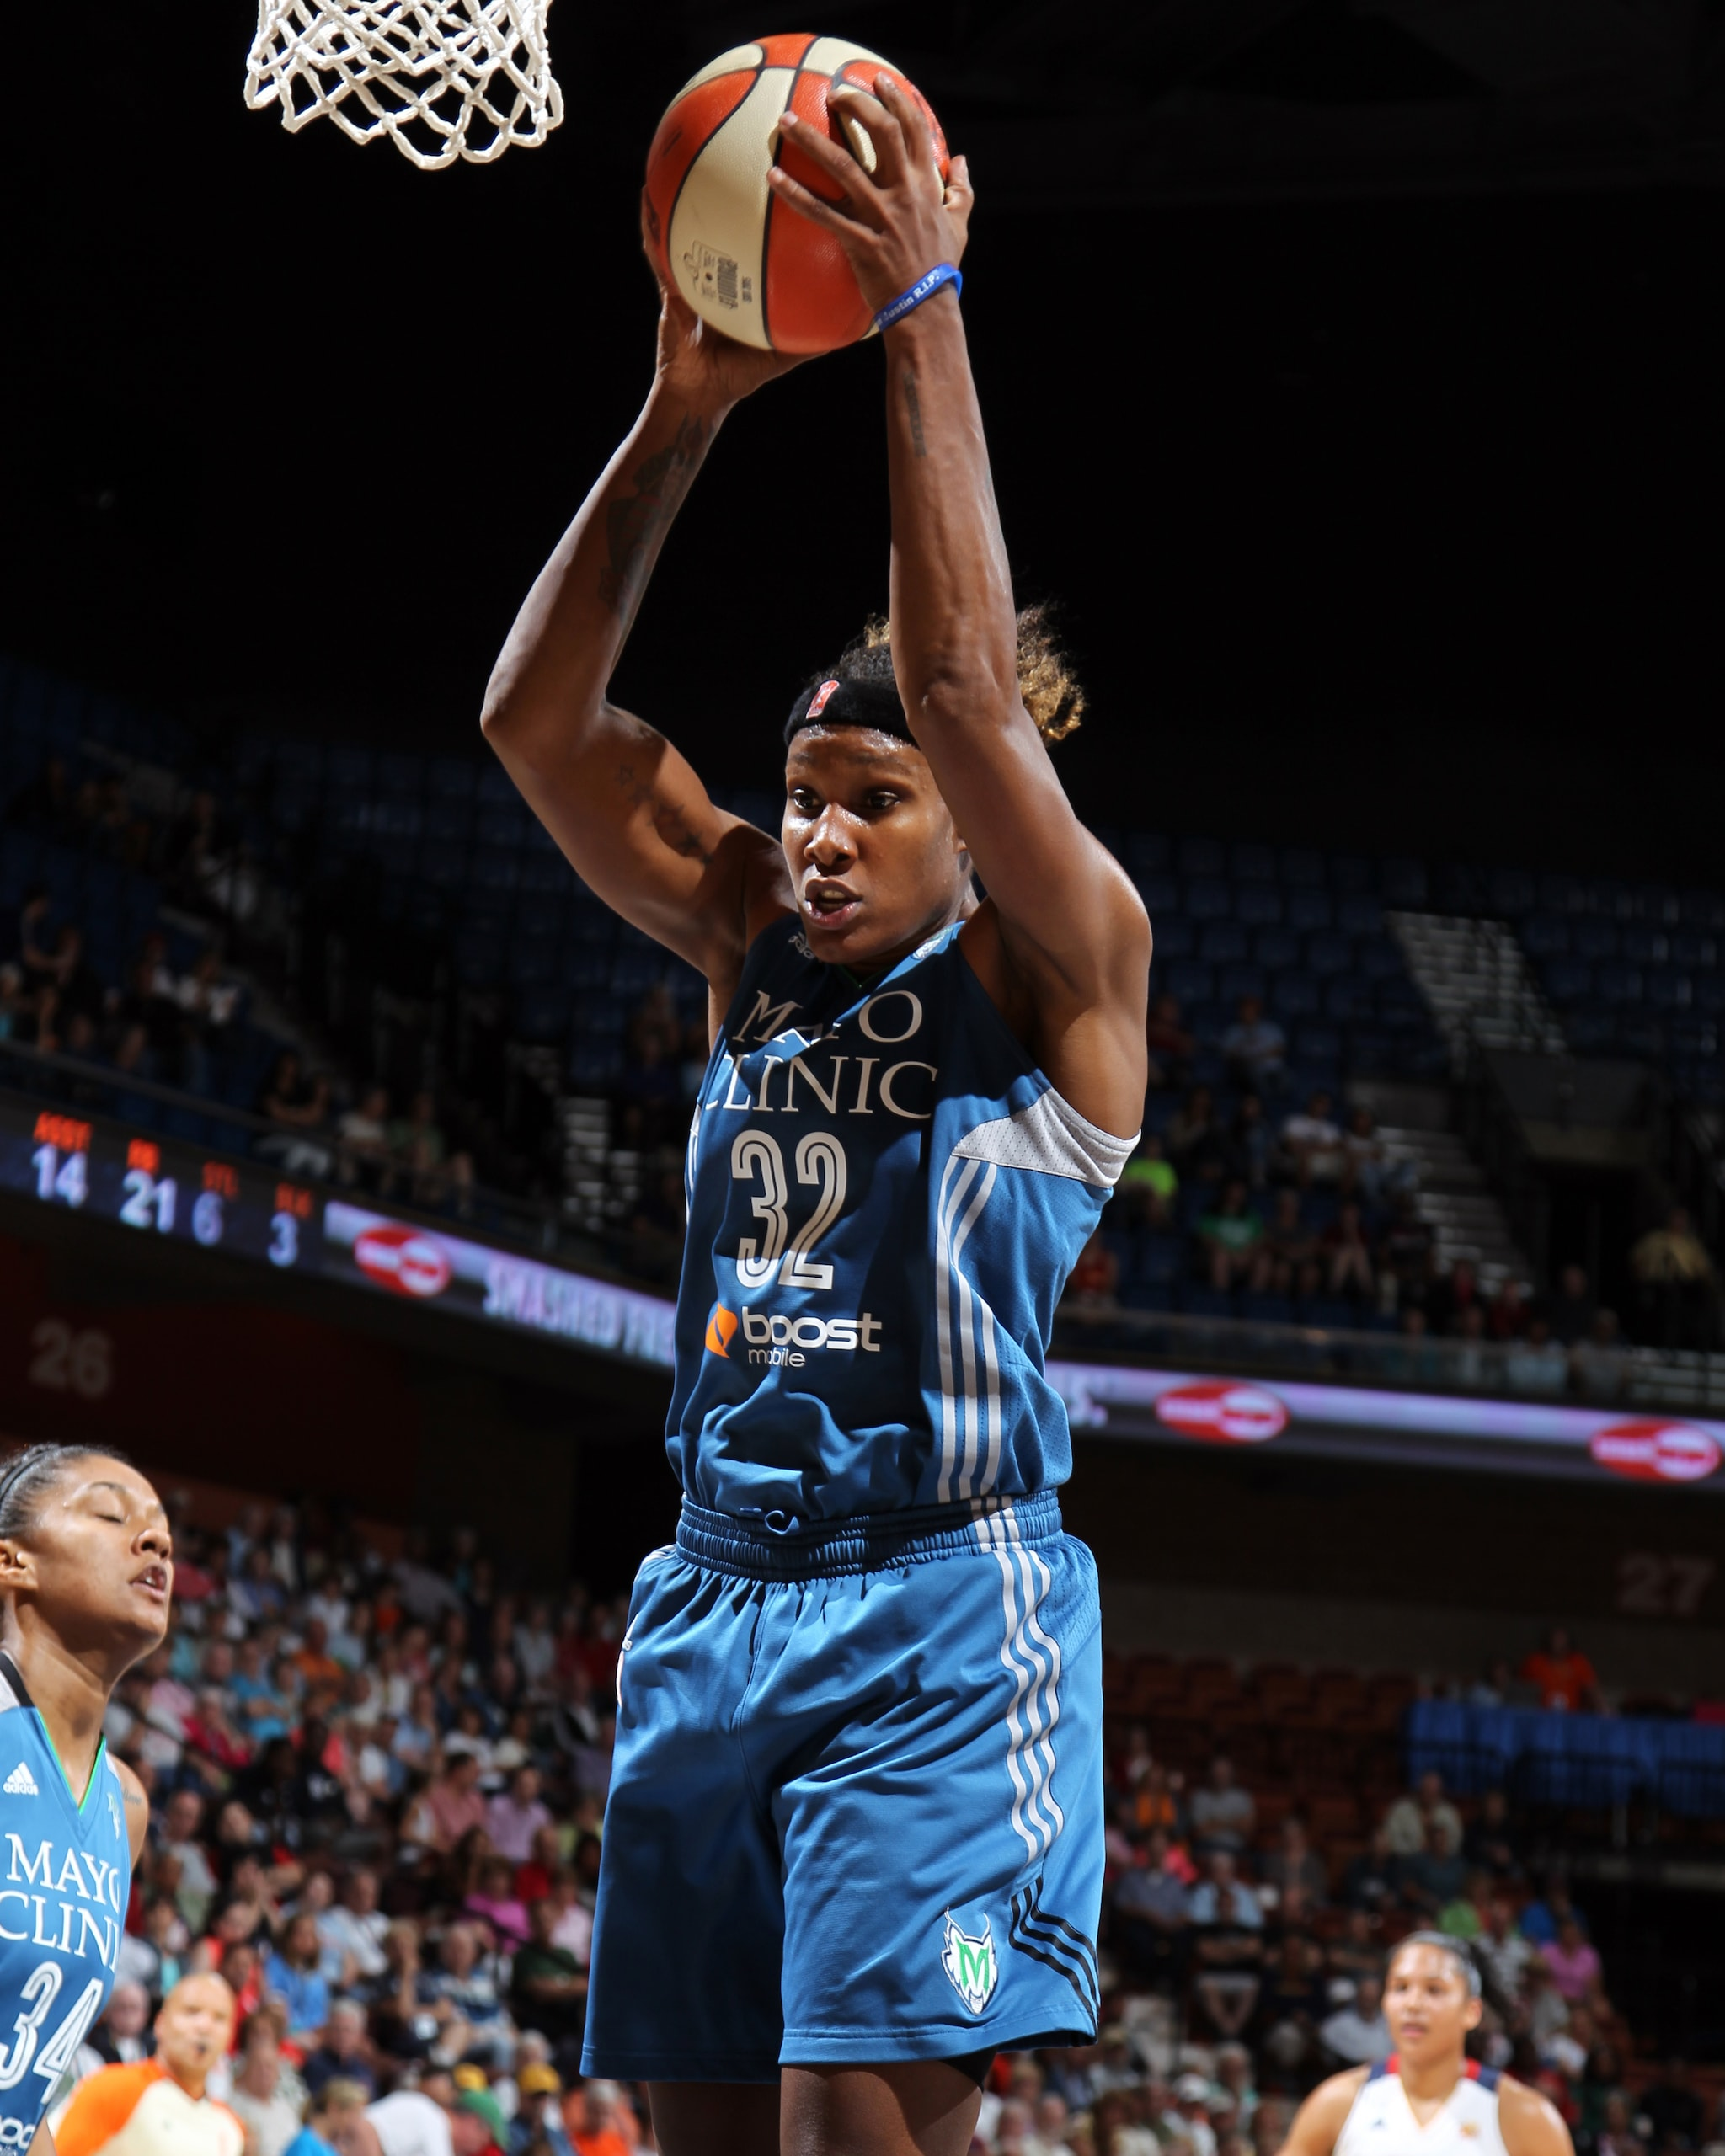 Another stellar dfensive effort by Lynx forward Rebekkah Brunson slowed Connecticut's high-scoring offense but Brunson contributed in all aspects, finishing with 12 points, six rebounds, three assists  and five steals.